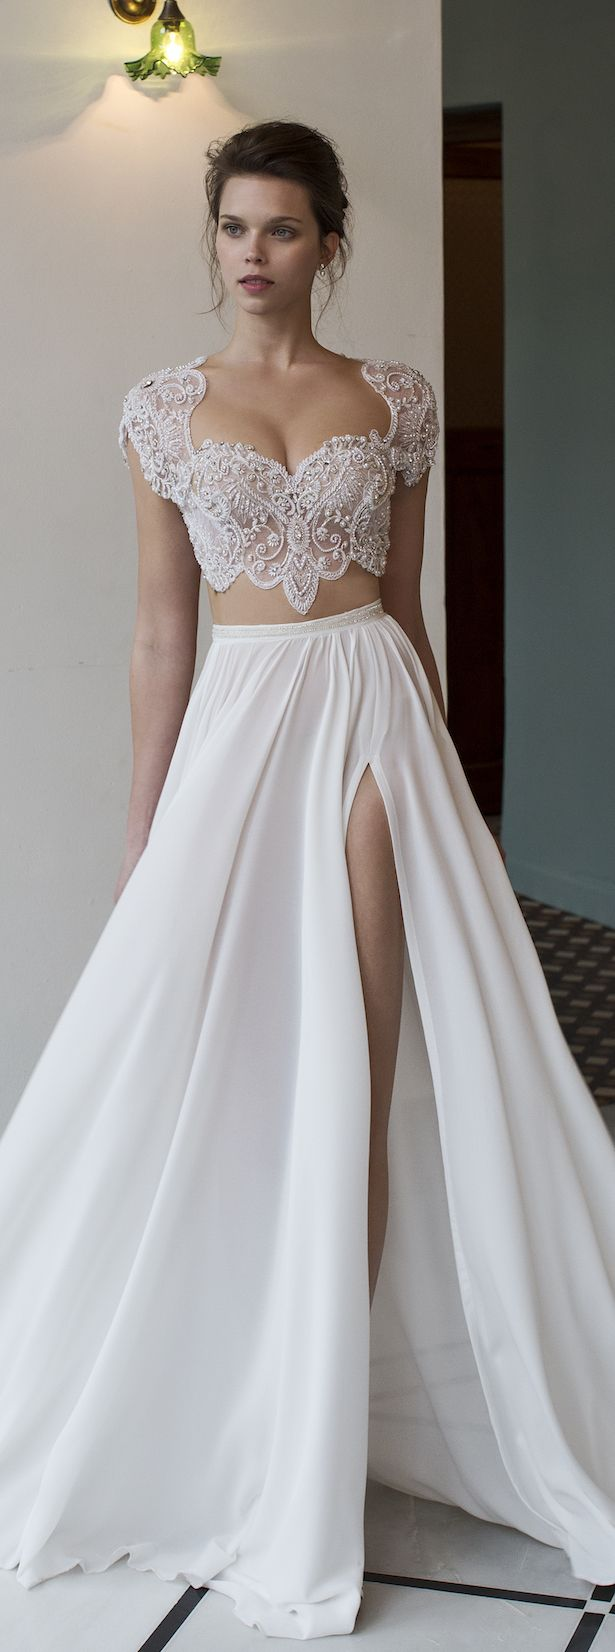 Sexy two-piece bridal gown with lace top | Bridal Trends: Two- Piece Wedding Dresses via @BelleMagazine